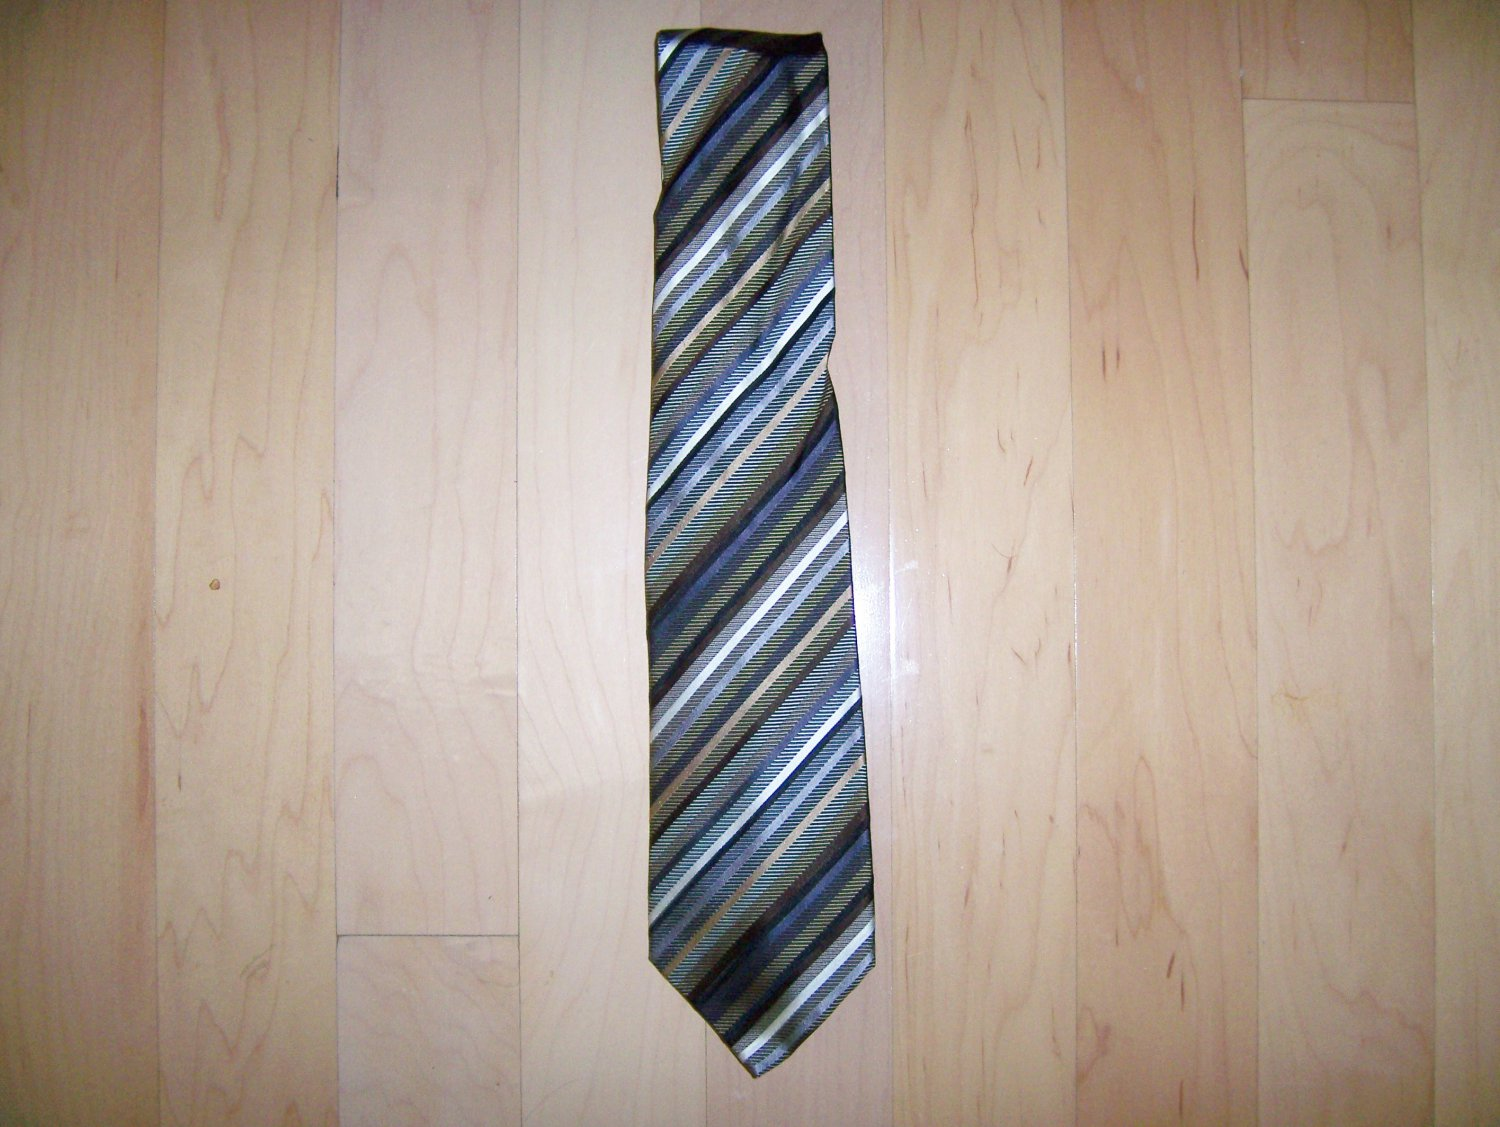 Tie Brown/Grey/White/Black Striped Tie  By Dockers BNK1488